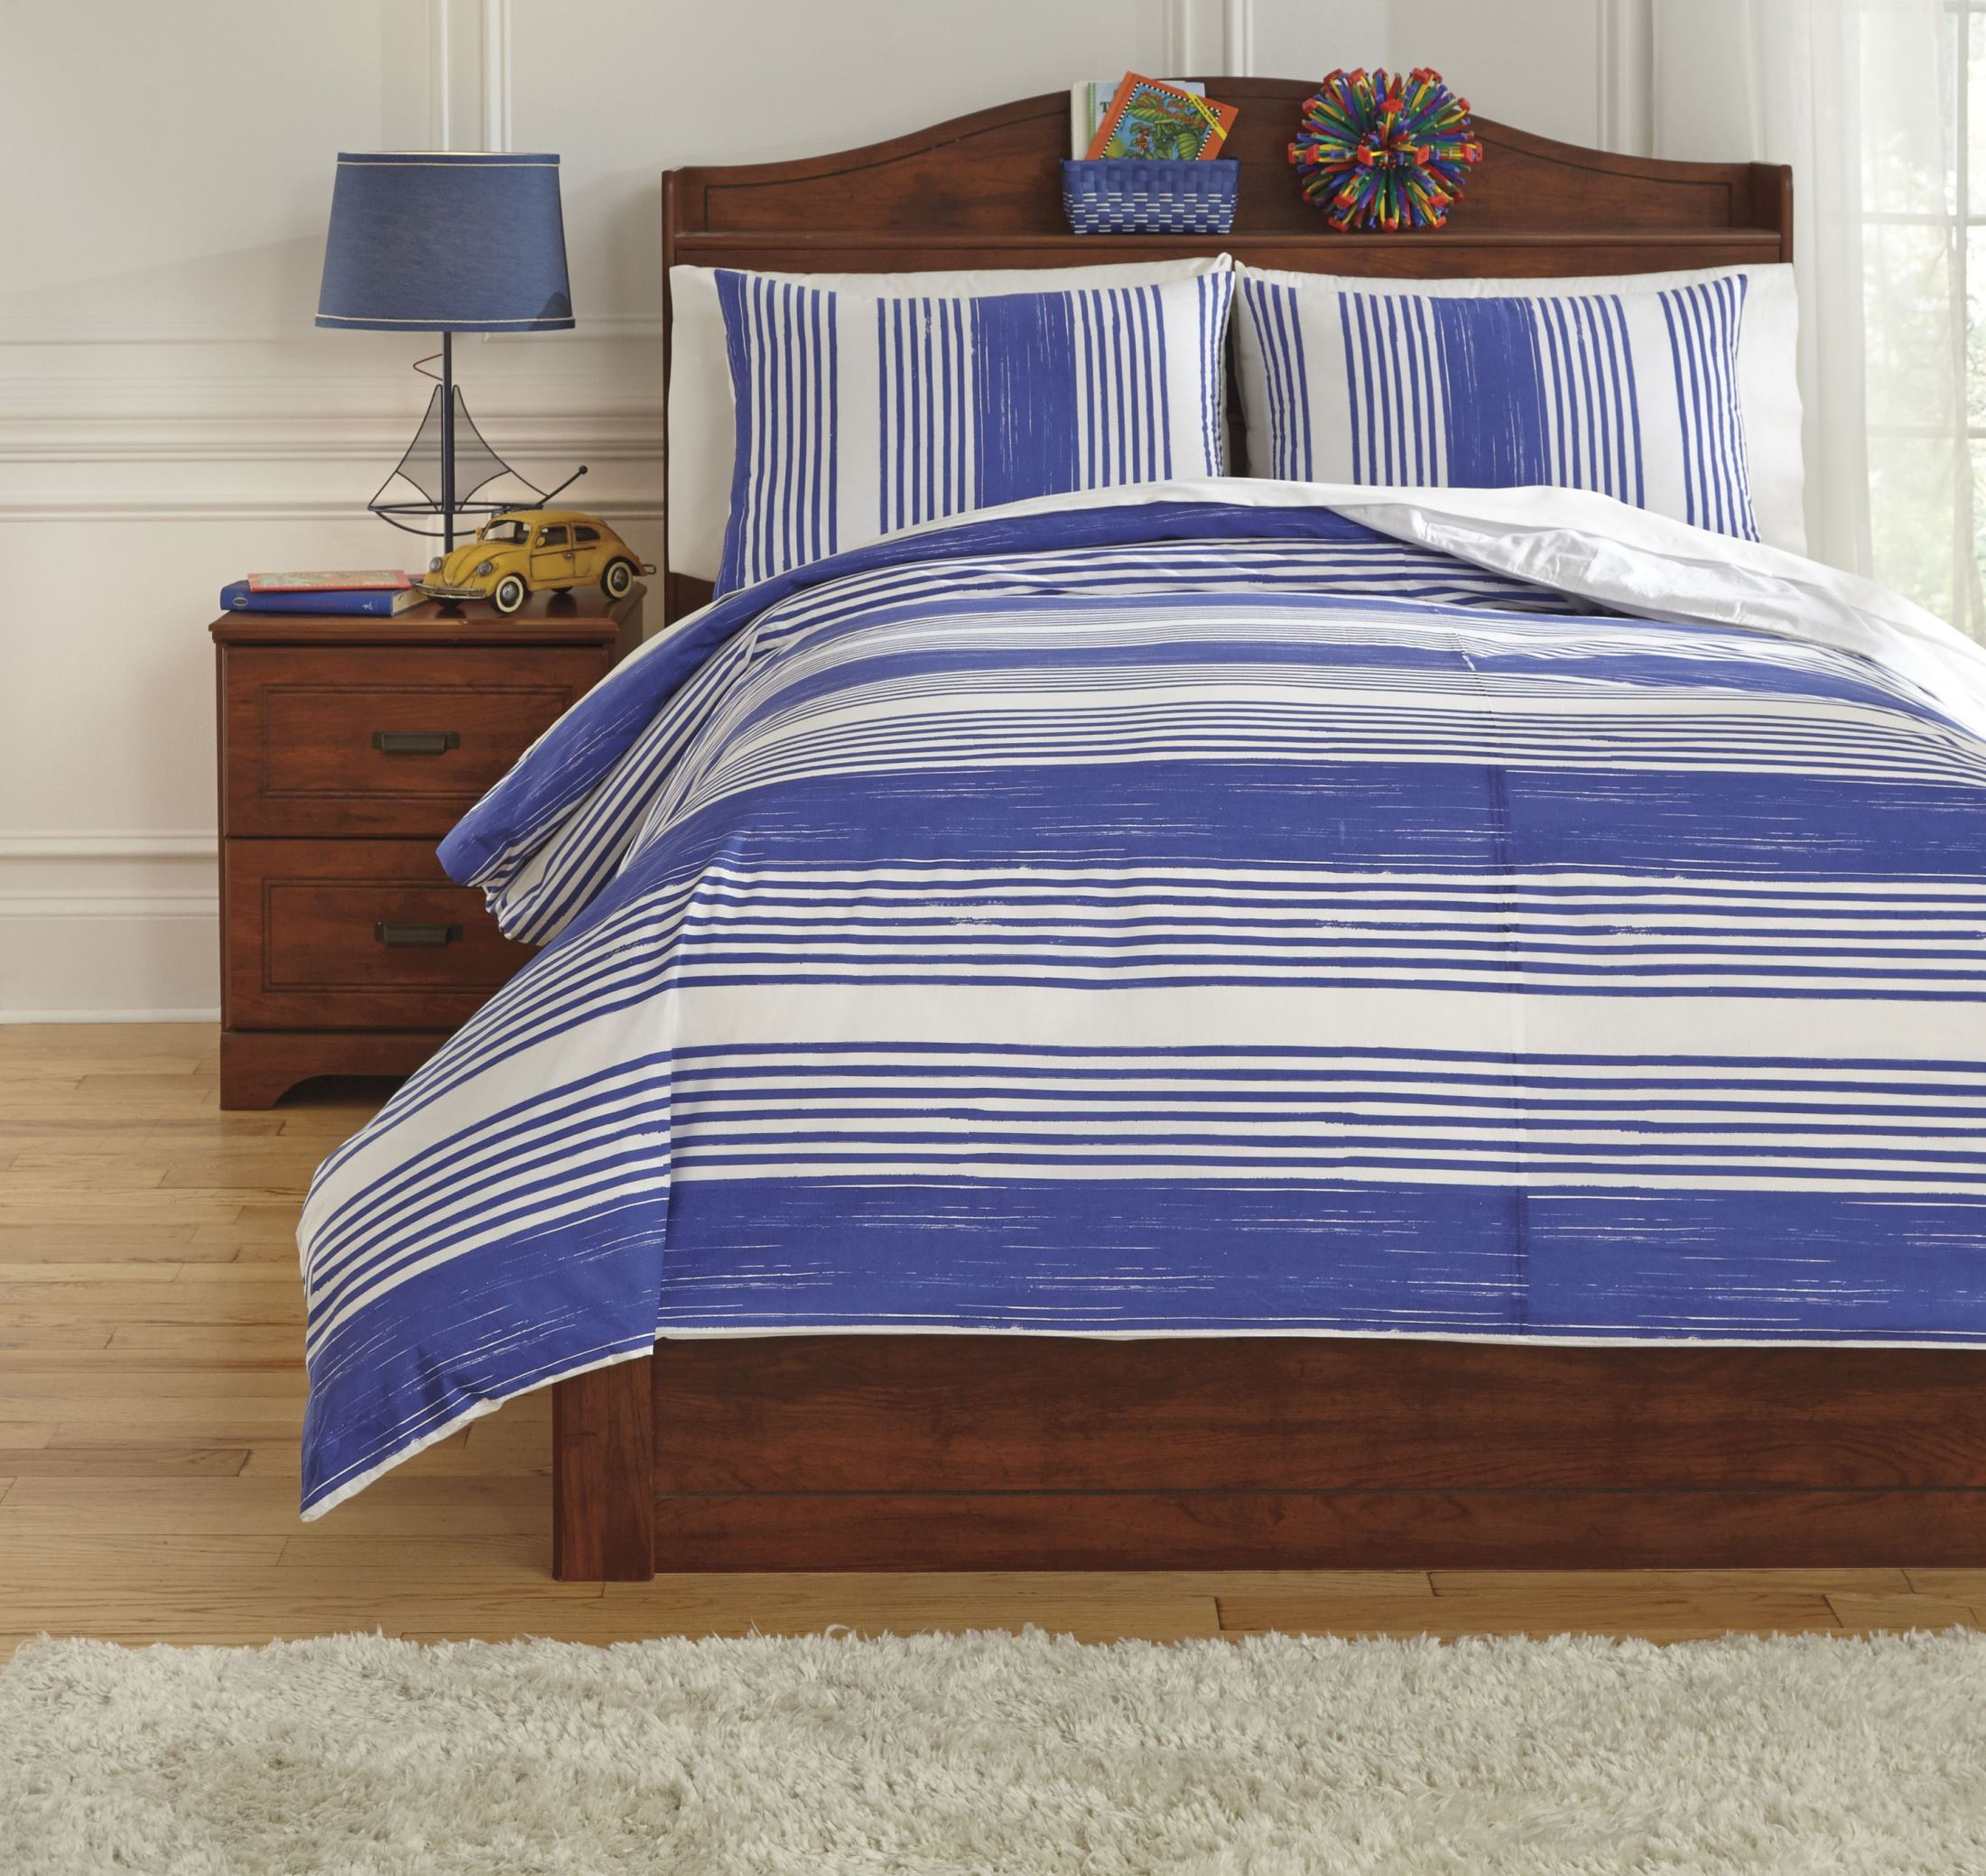 Buy Duvet Cover Taries Blue Full Duvet Cover Set